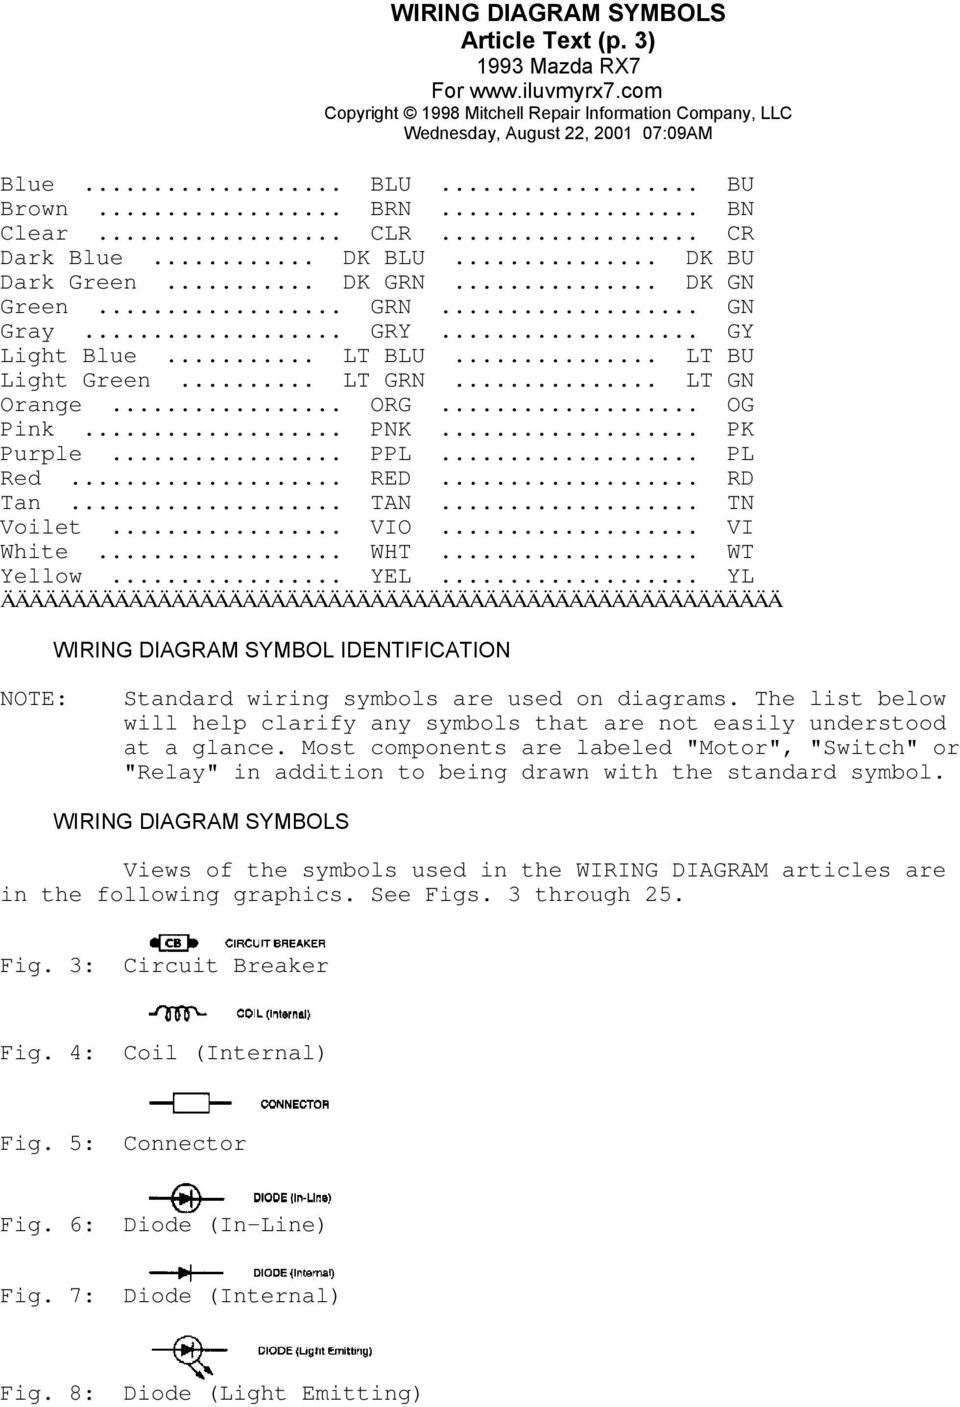 This File Is Available For Free Download At Pdf Howtoidentifycircuitsymbolslightemittingdiode Vi White Wht Wt Yellow